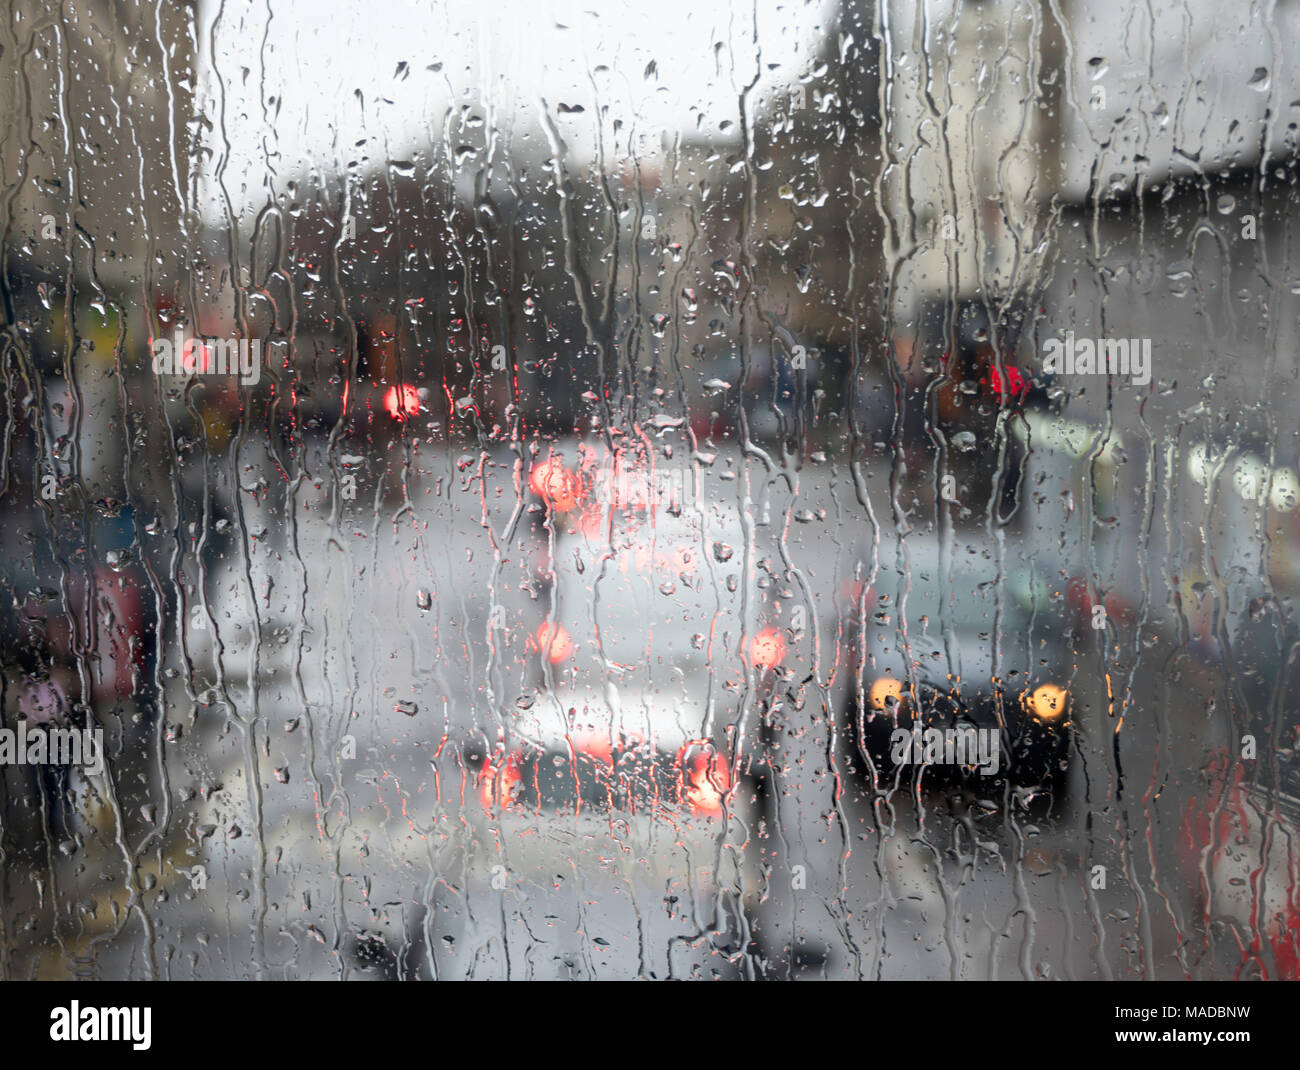 Road traffic seen through heavy rain on window, Newcastle city centre, north east England, UK - Stock Image